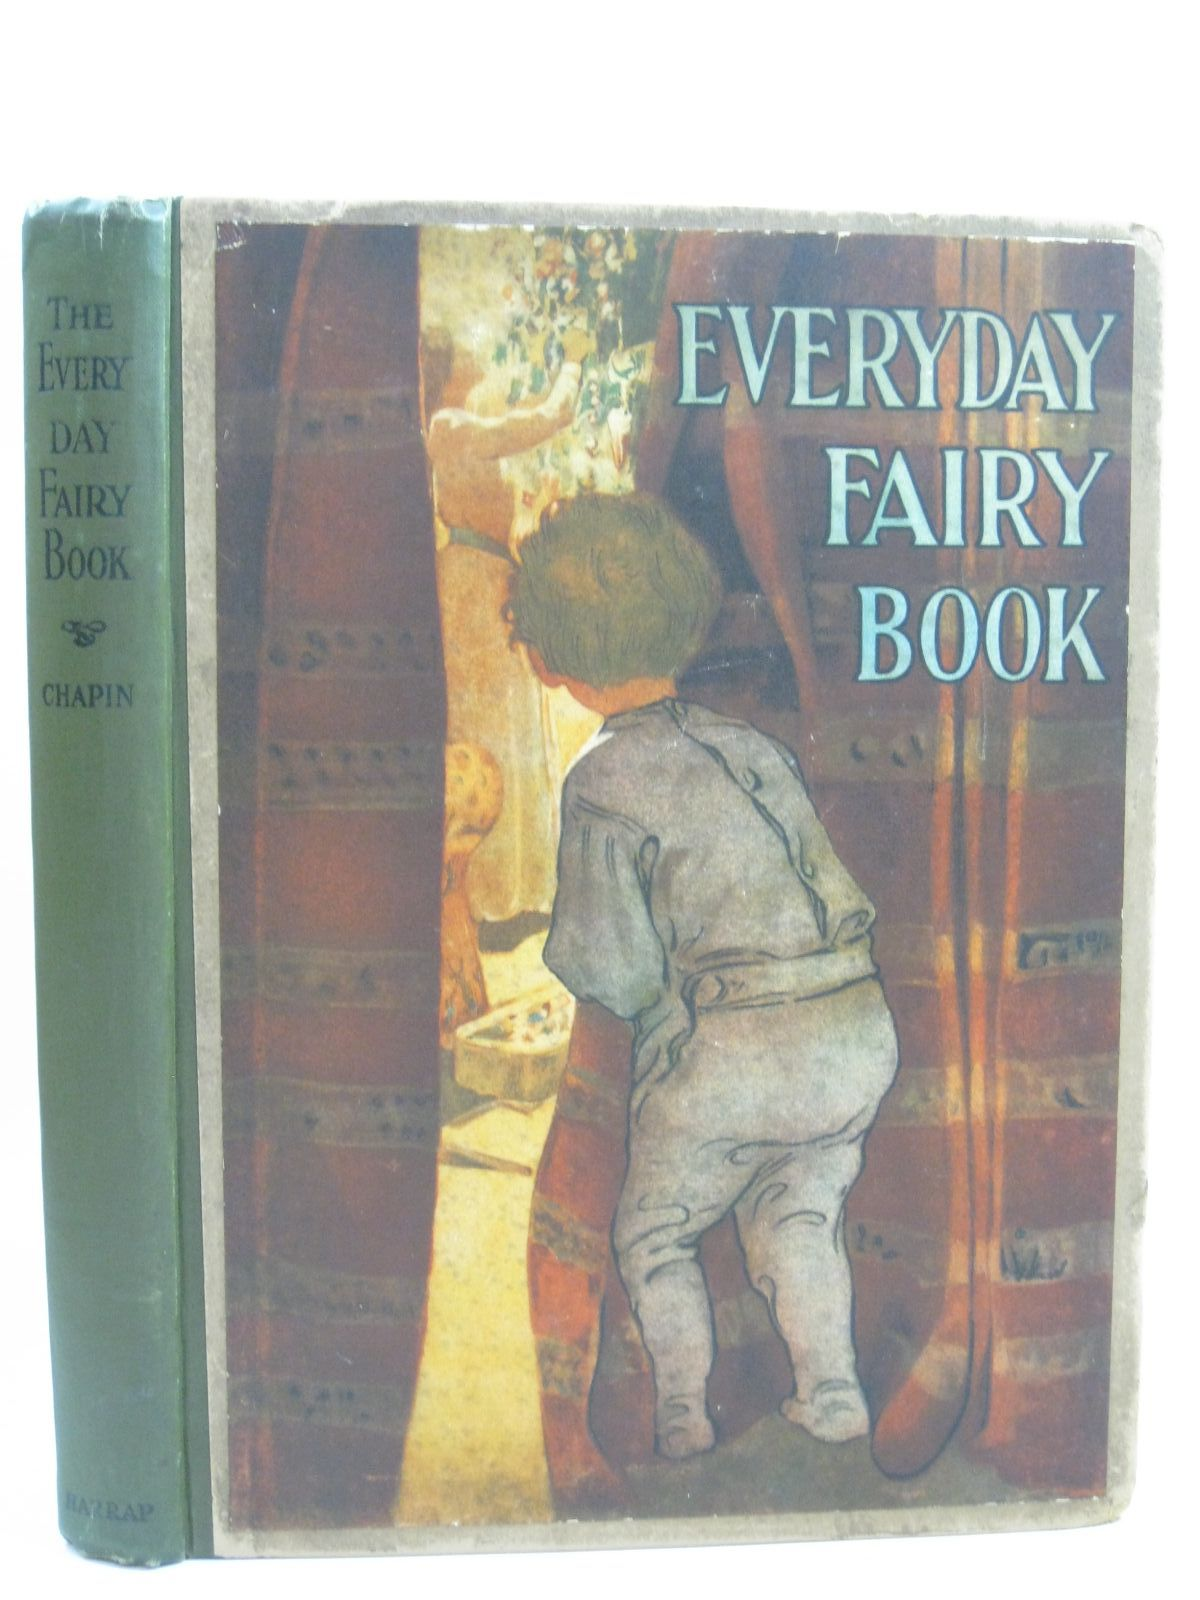 Photo of THE EVERYDAY FAIRY BOOK written by Chapin, Anna Alice illustrated by Smith, Jessie Willcox published by George G. Harrap & Co. Ltd. (STOCK CODE: 1405361)  for sale by Stella & Rose's Books